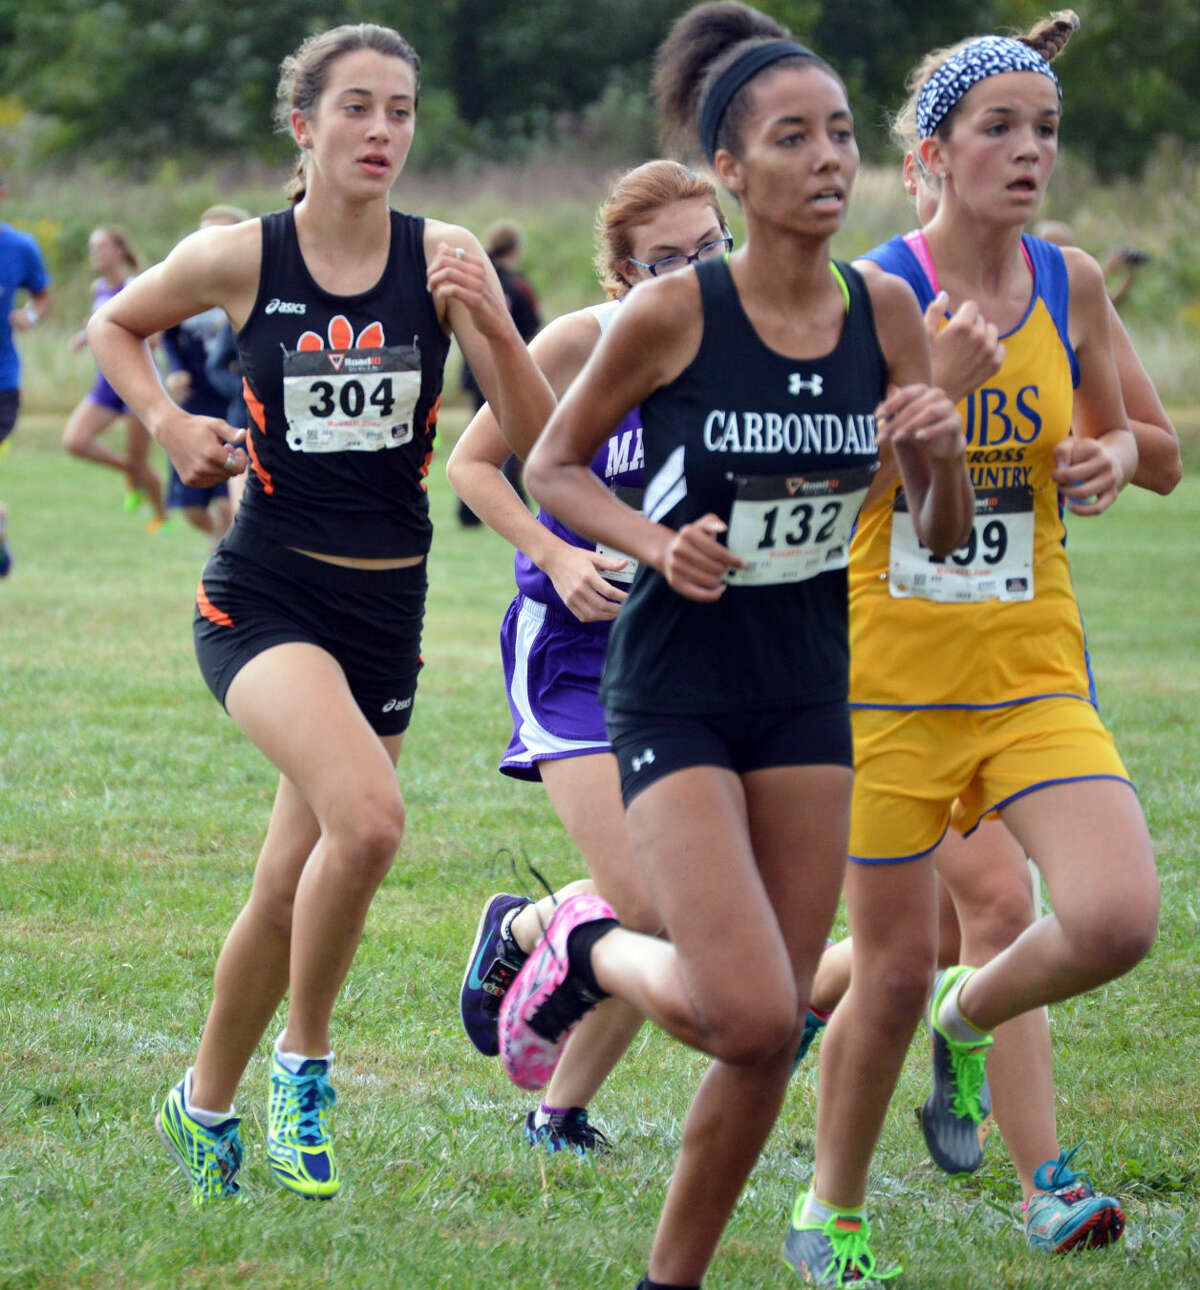 EHS's Maddie Miller (No. 304) is in a pack of runners after the first mile of the Edwardsville Invitational on Saturday at SIUE.